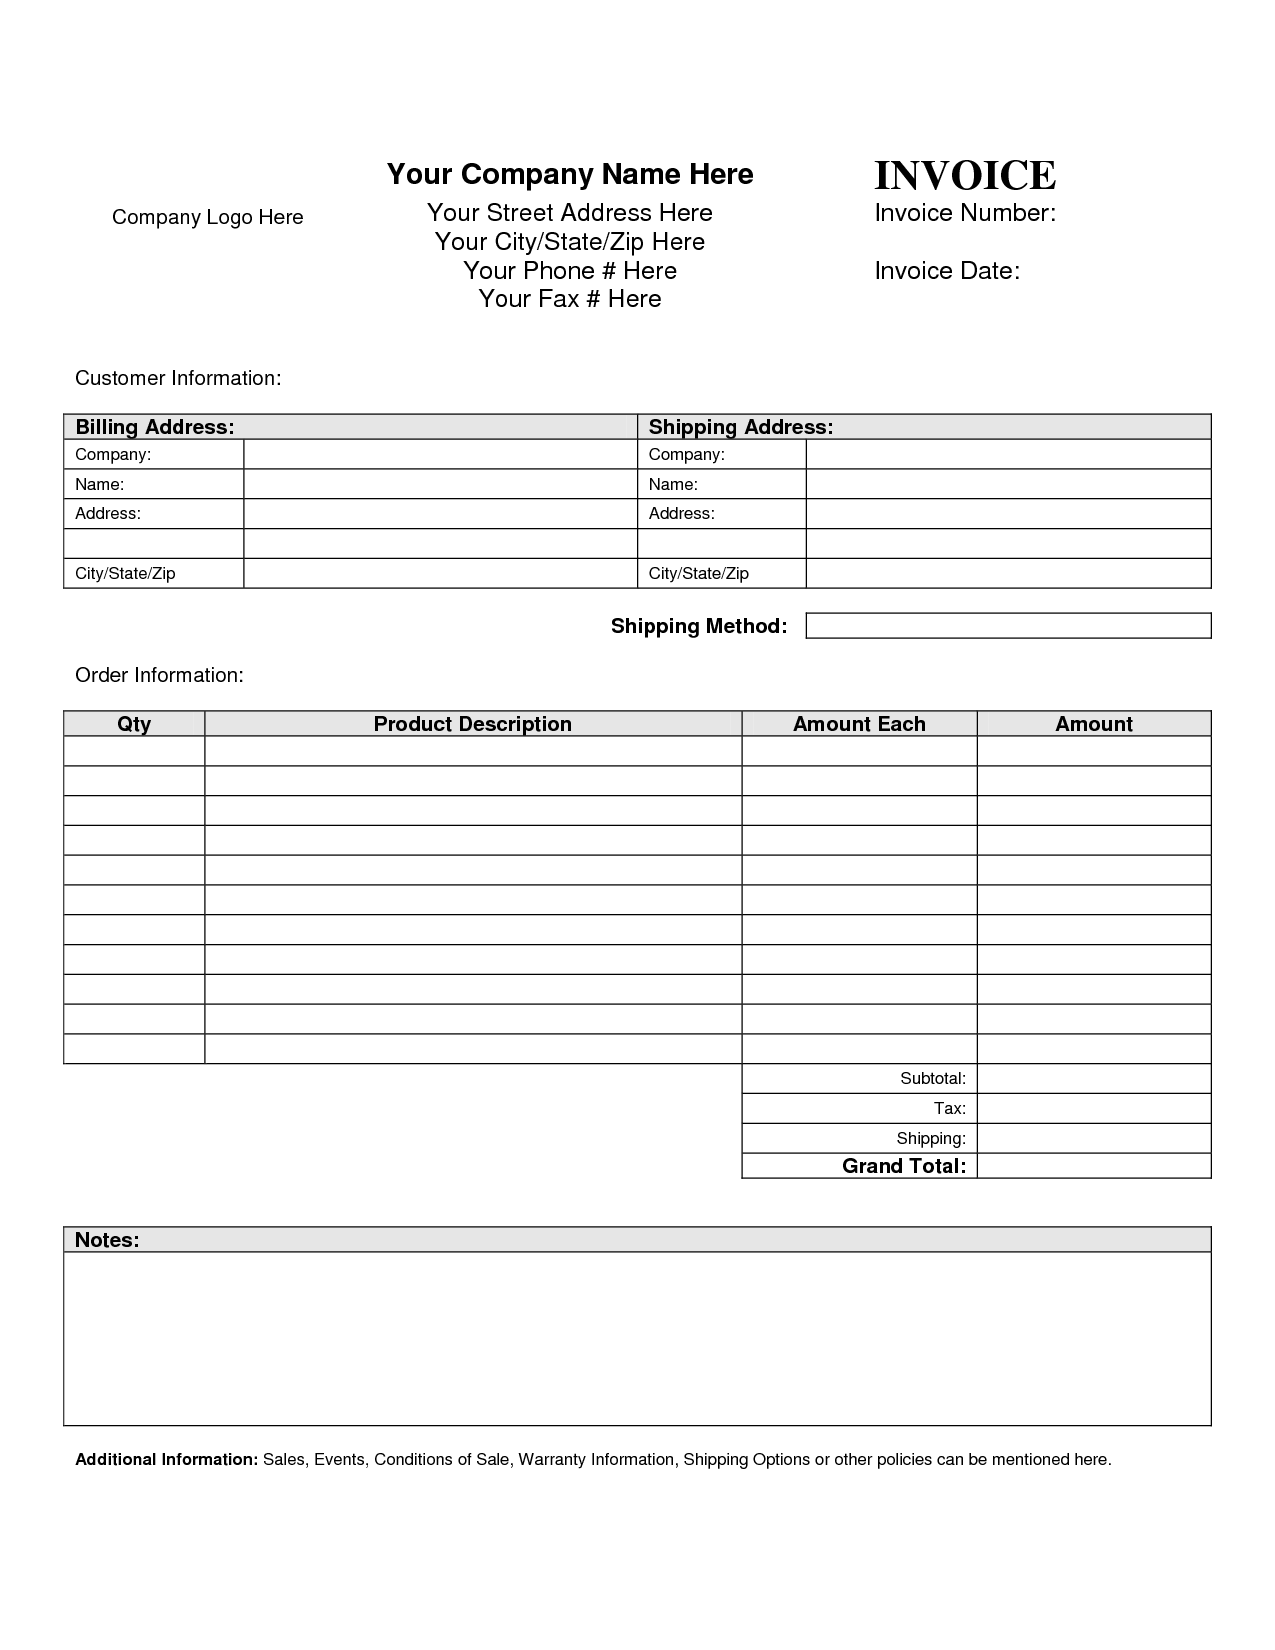 Microsoft Invoice Templates Free Hardhost CV Templates Download Free CV Templates [optimizareseo.online]